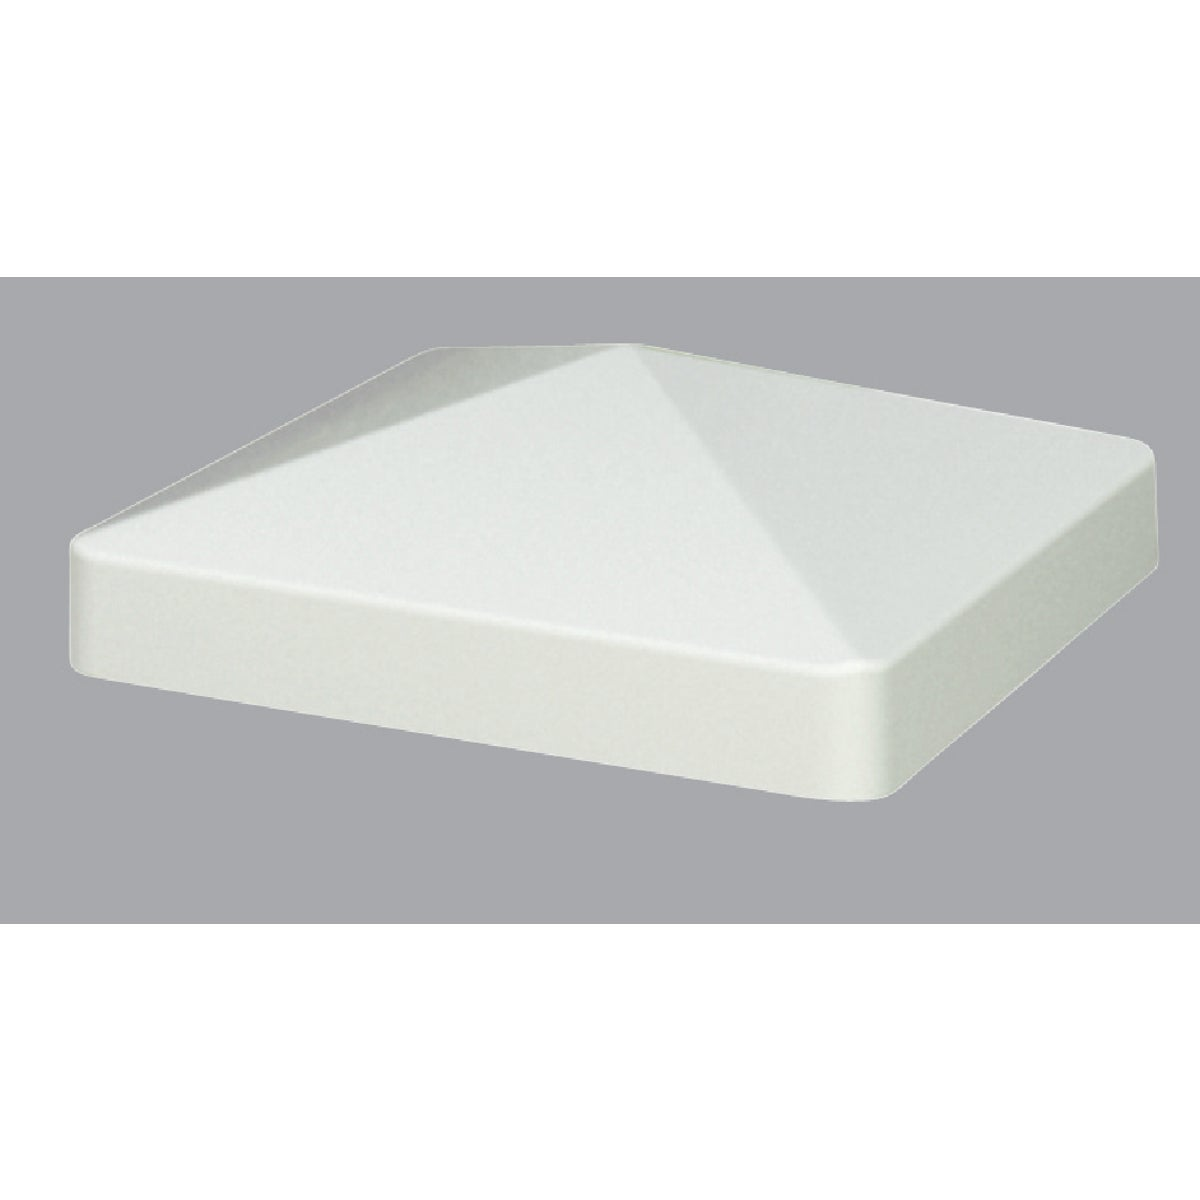 4X4 VNL PYRAMID POST CAP - 127602 by Ufpi Lbr & Treated